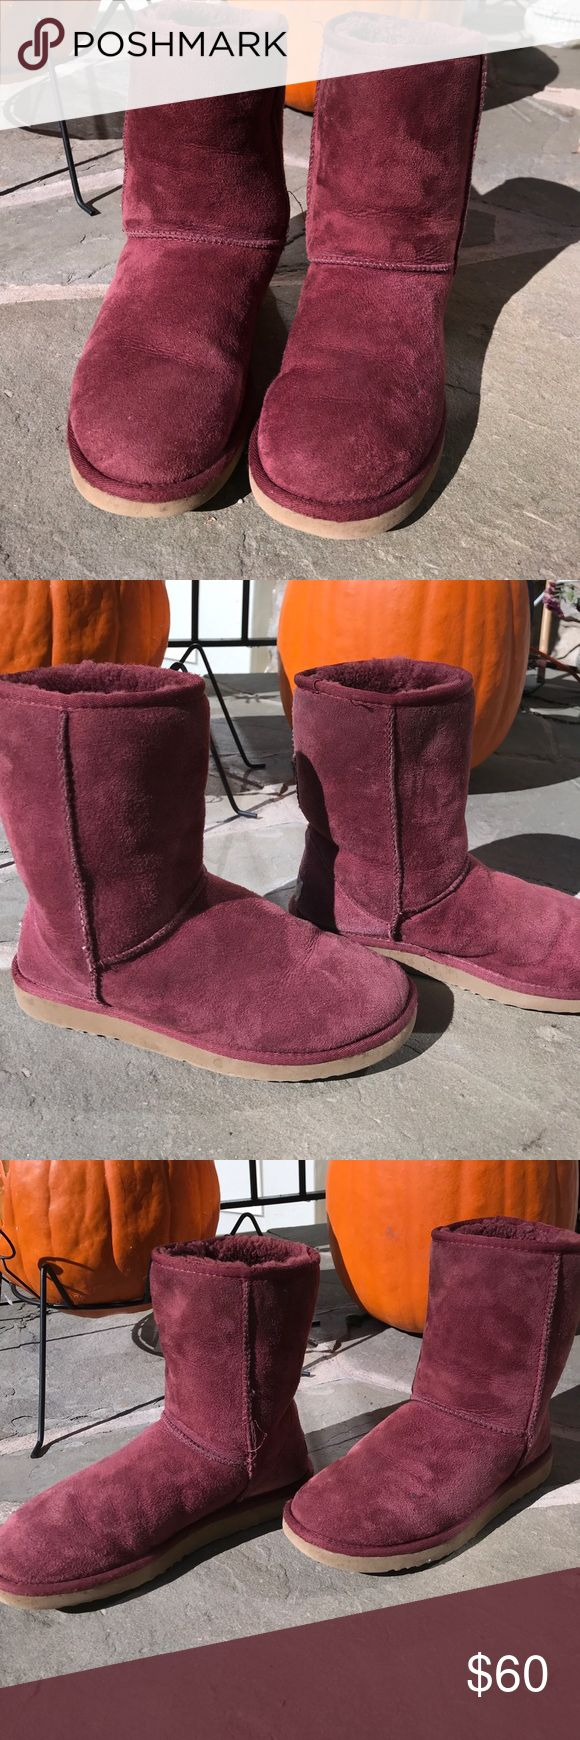 Burgundy Uggs Overall used but good condition, fur inside in good condition and no smell, soles lightly worn, suede may show light signs of wear but in overall good condition (small hardly noticeable spot on left boot see 2nd to last pic) UGG Shoes Winter & Rain Boots